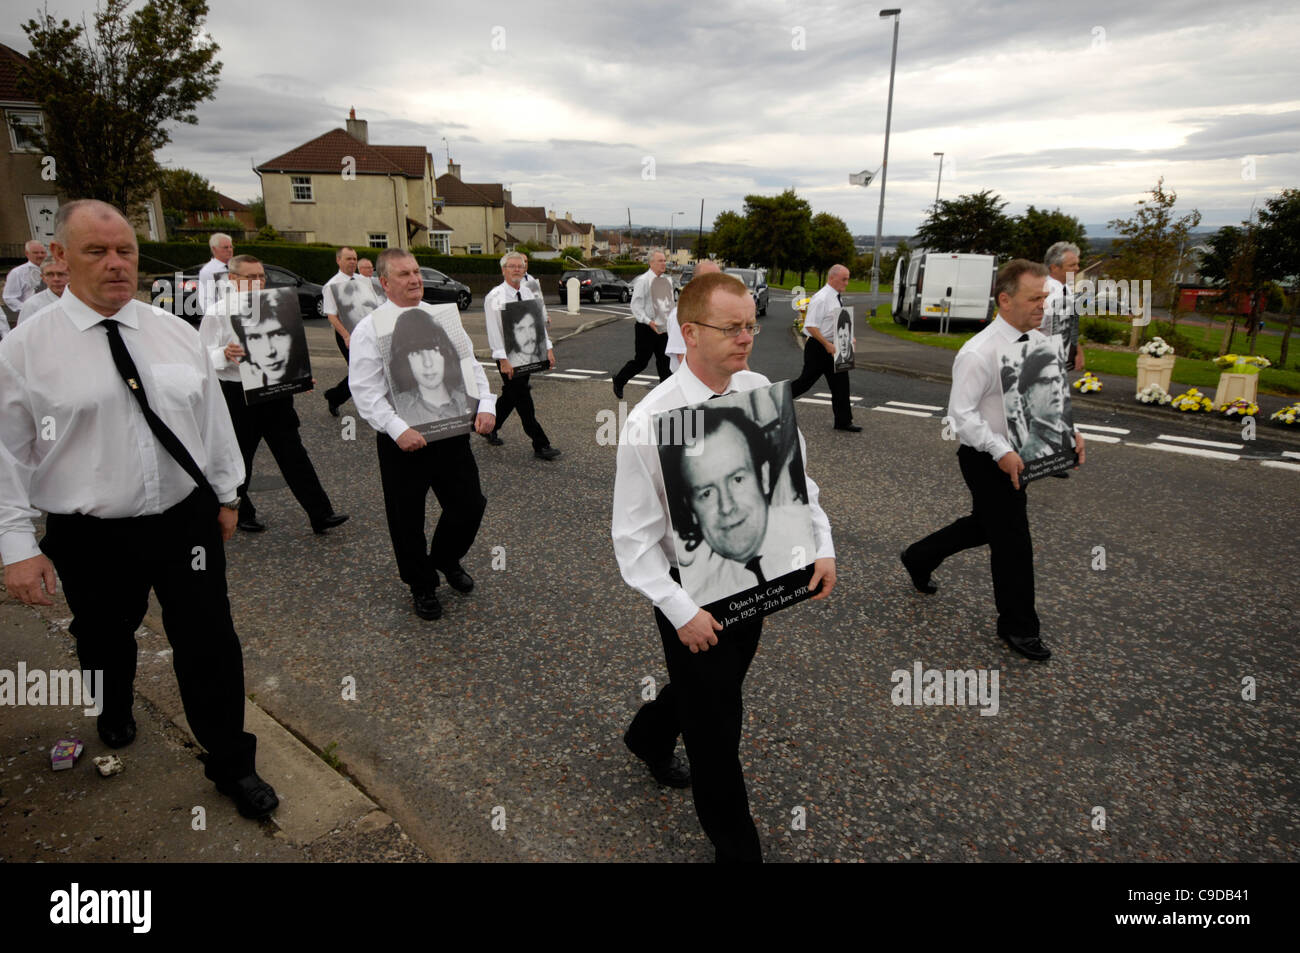 Former Irish republican prisoners marching towards the republican plot in Londonderry, commemorating the IRA dead. - Stock Image